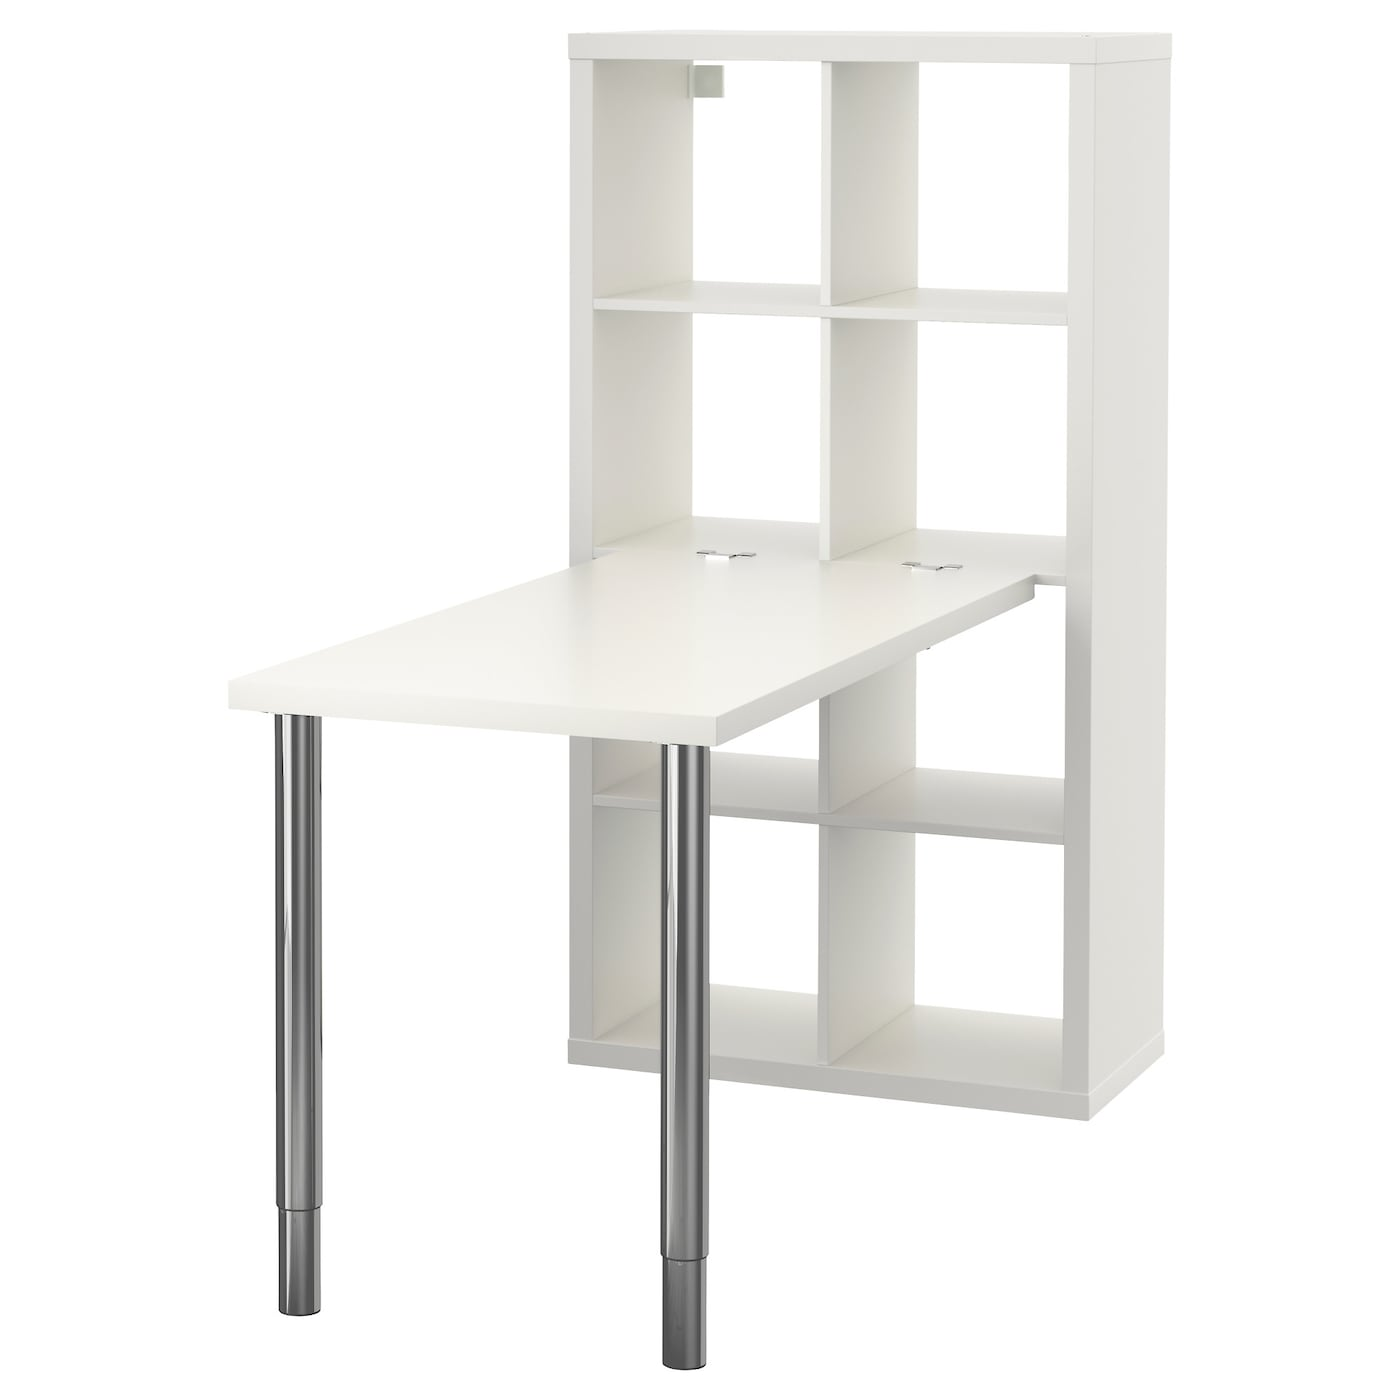 kallax desk combination white chrome plated 77 x 147 cm ikea. Black Bedroom Furniture Sets. Home Design Ideas